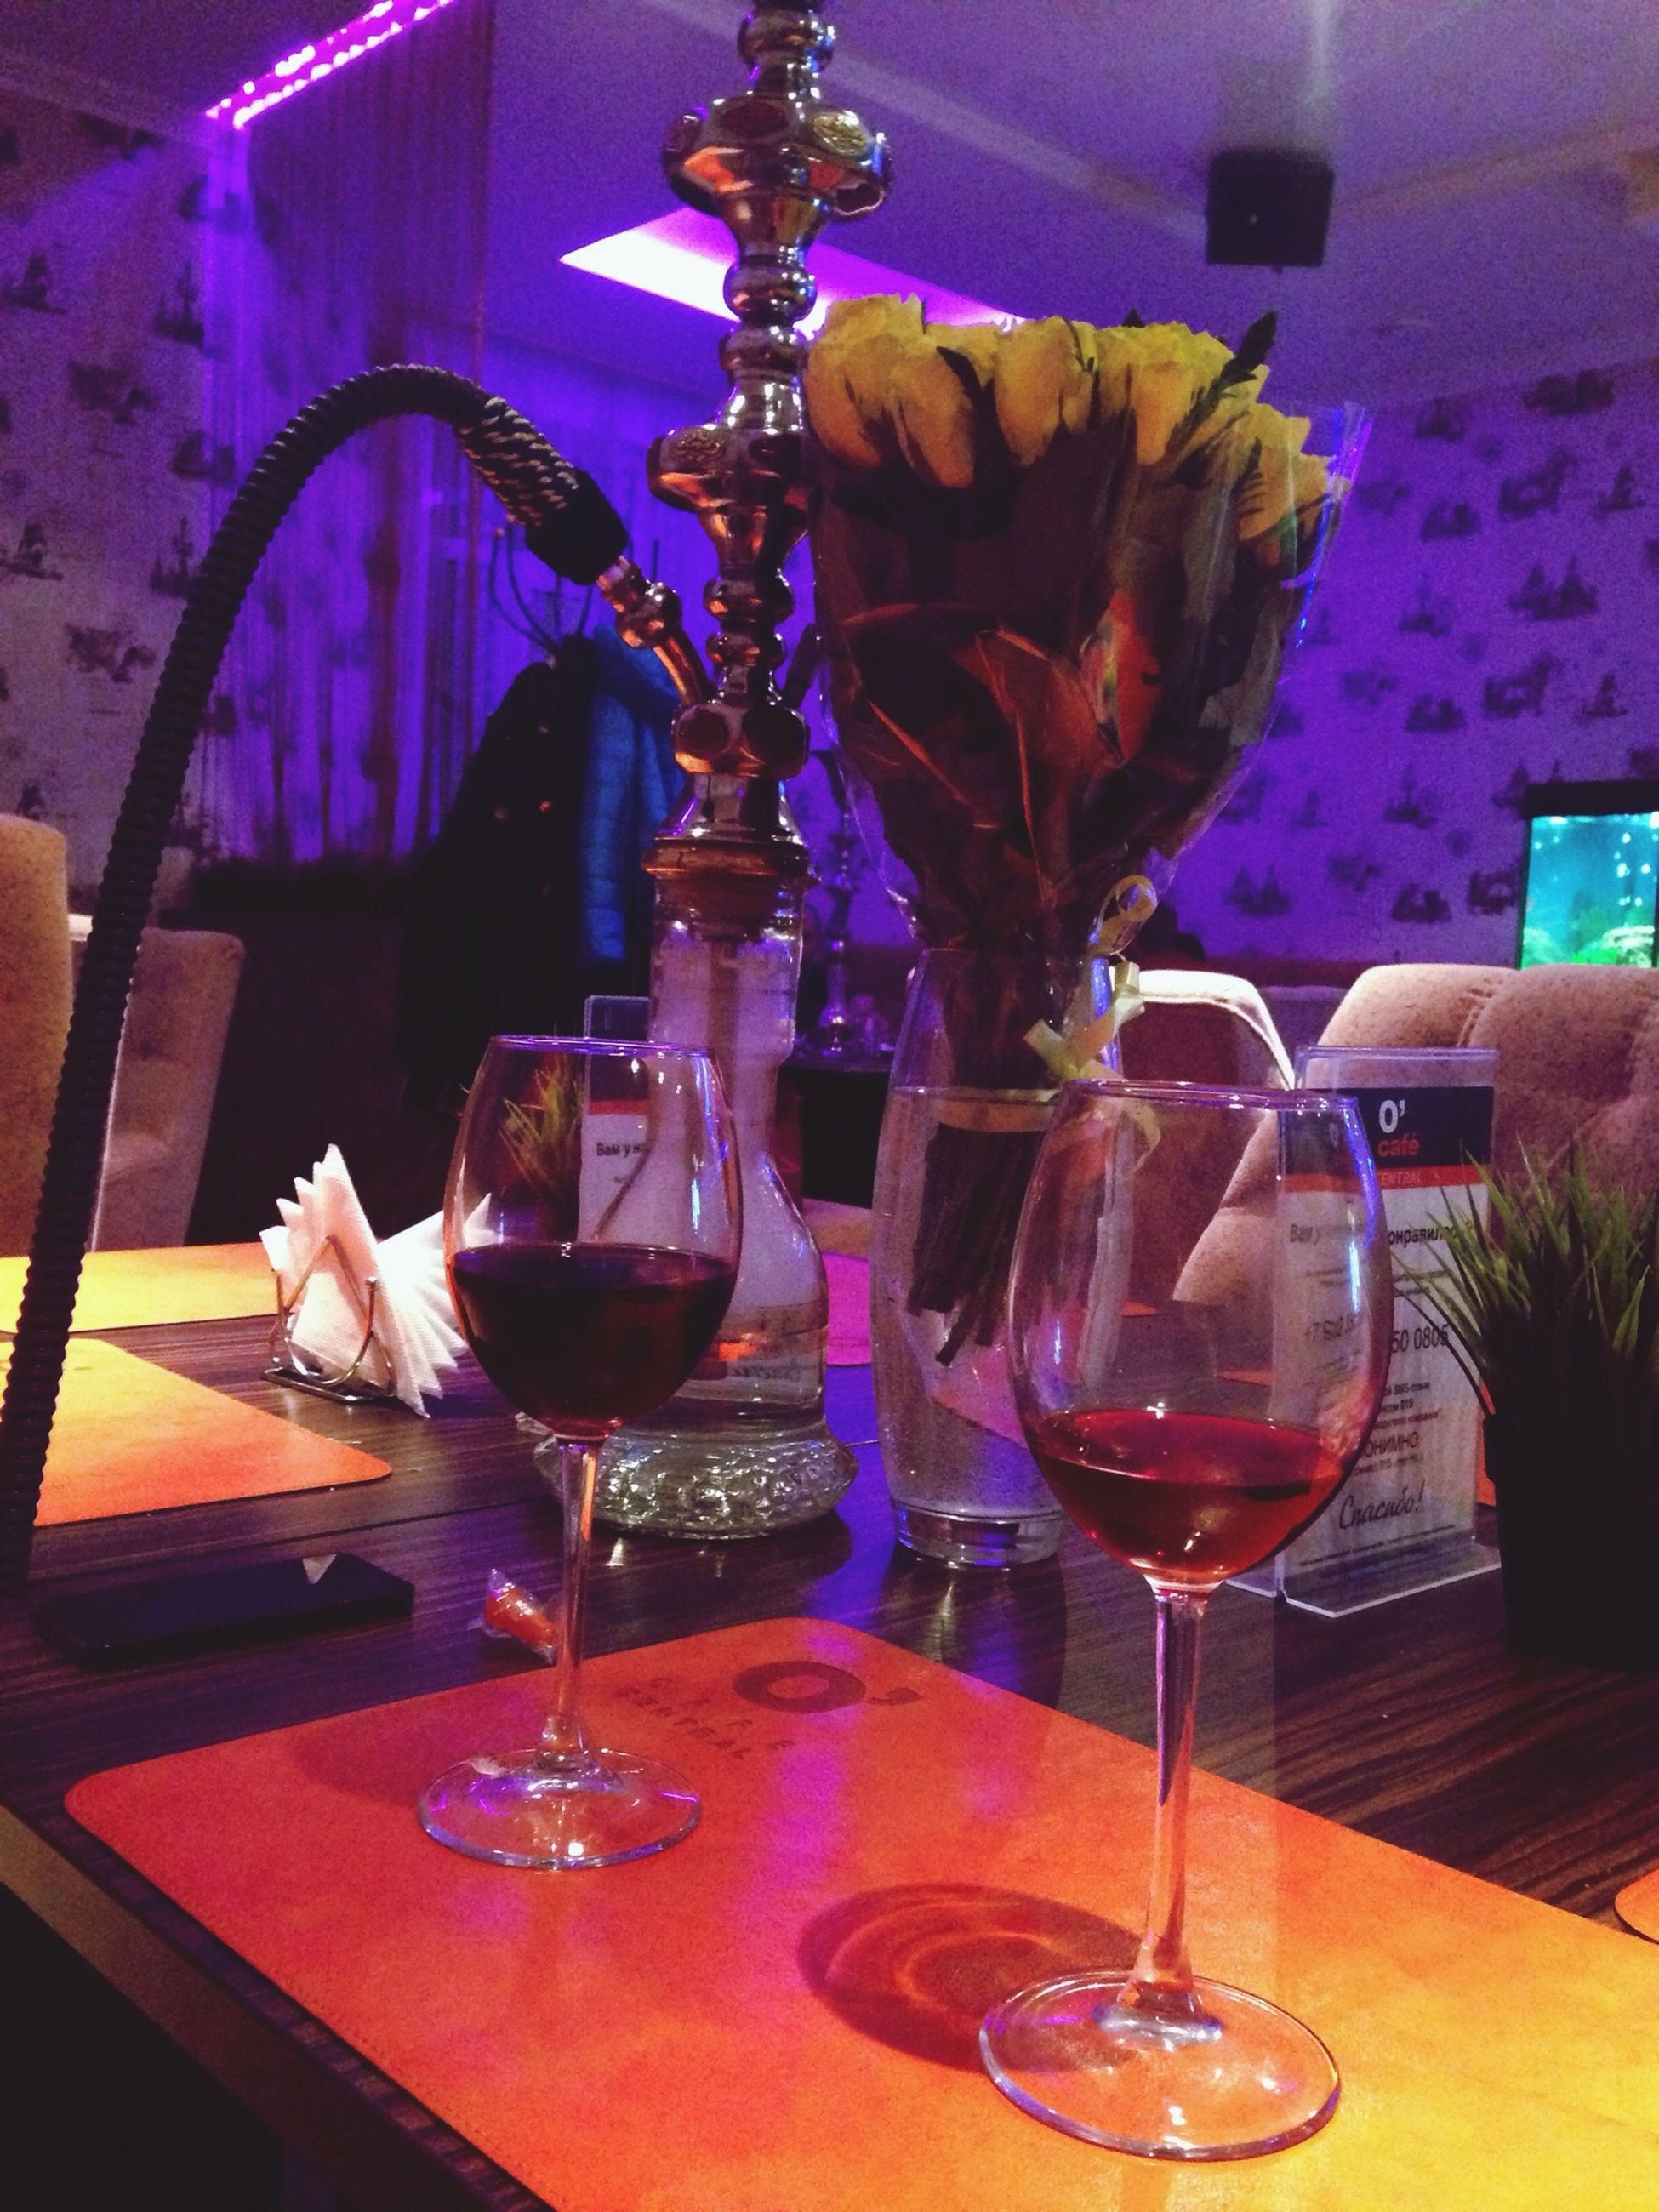 indoors, table, drinking glass, glass - material, drink, wineglass, food and drink, transparent, refreshment, still life, freshness, restaurant, vase, home interior, glass, flower, wine, alcohol, close-up, chair